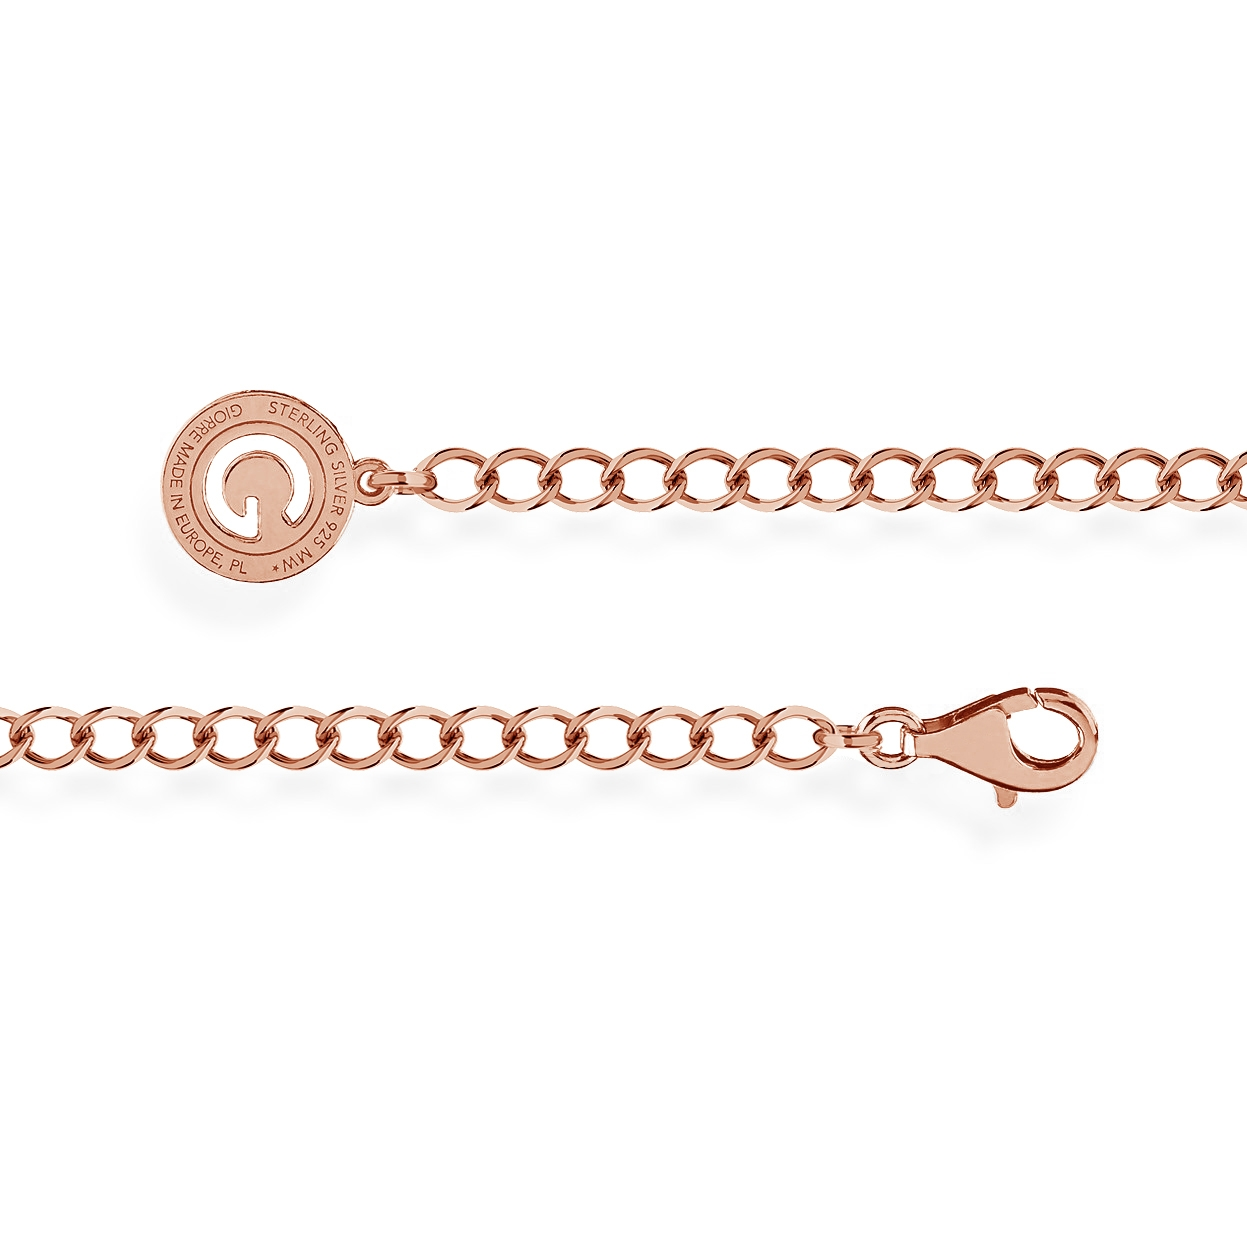 SILVER BRACELET ROMBO 16-24 CM, GOLD PLATED (PINK GOLD)